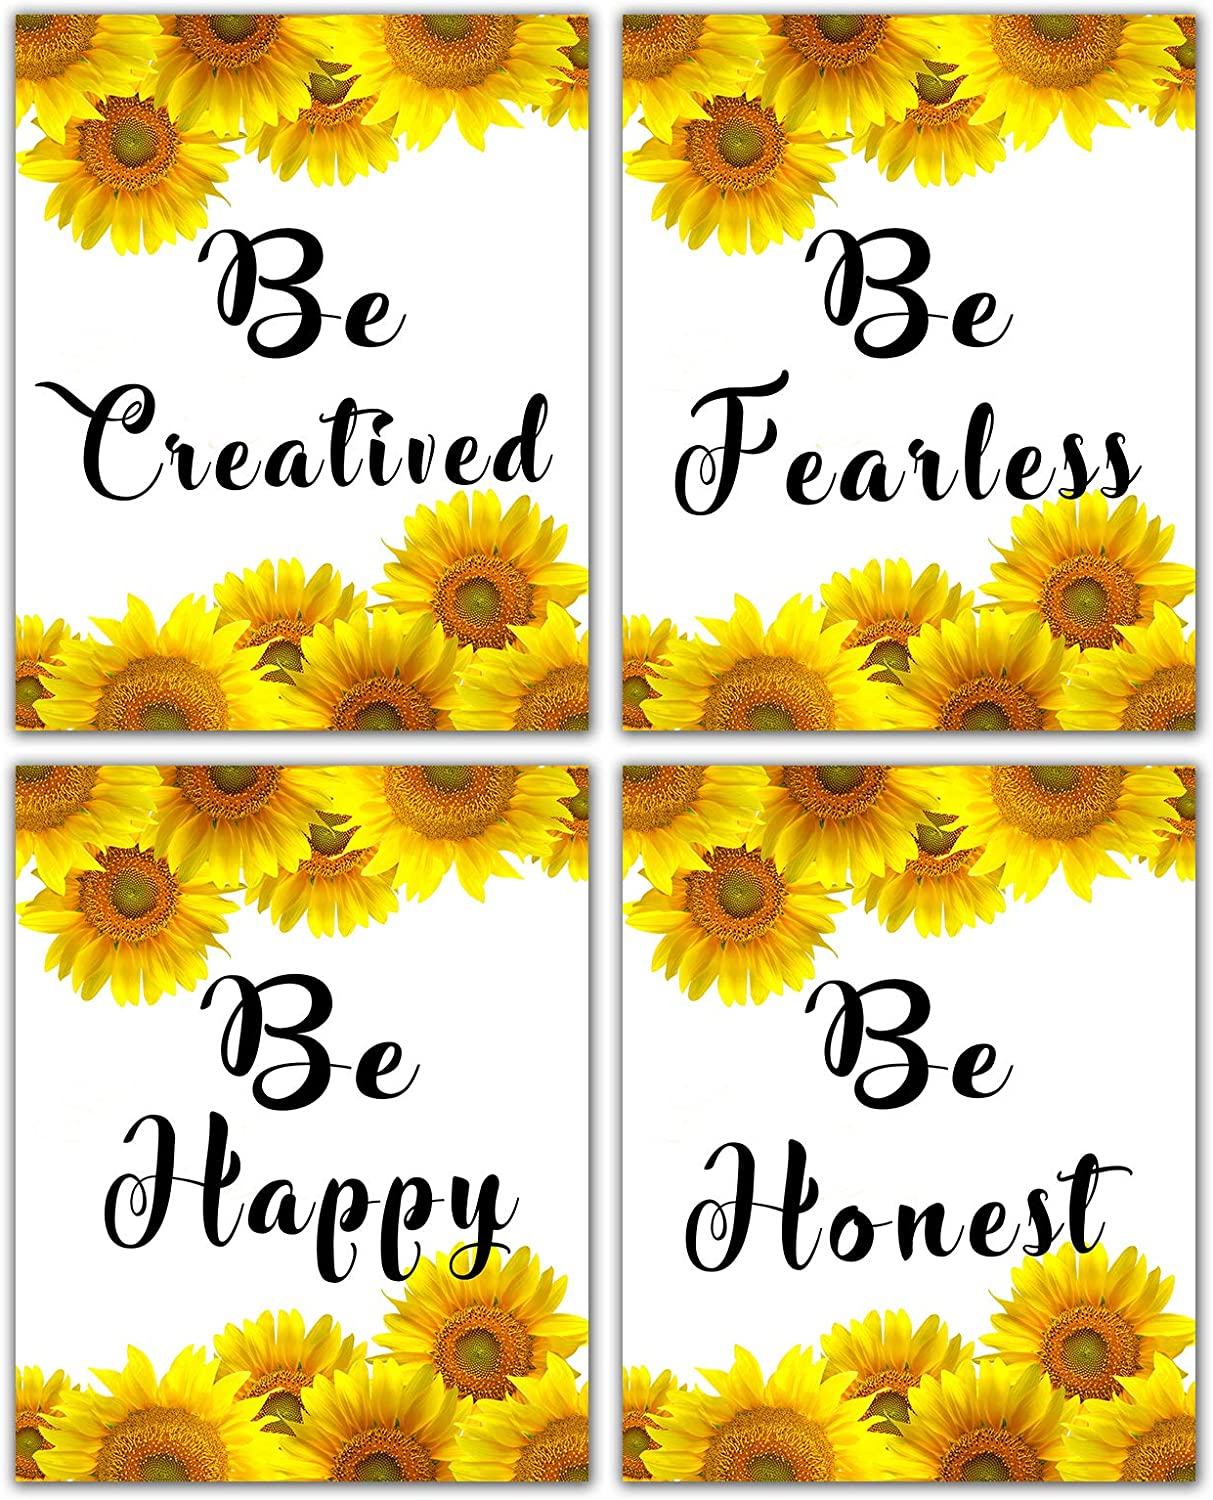 Inspirational Wall Art Motivational Posters - Home Office Decor Positive Quotes Picture Country Print Teen Girls Living Room Bathroom Bedroom Decoration Sunflower Wall Decor Sayings Unframed 8x10inch